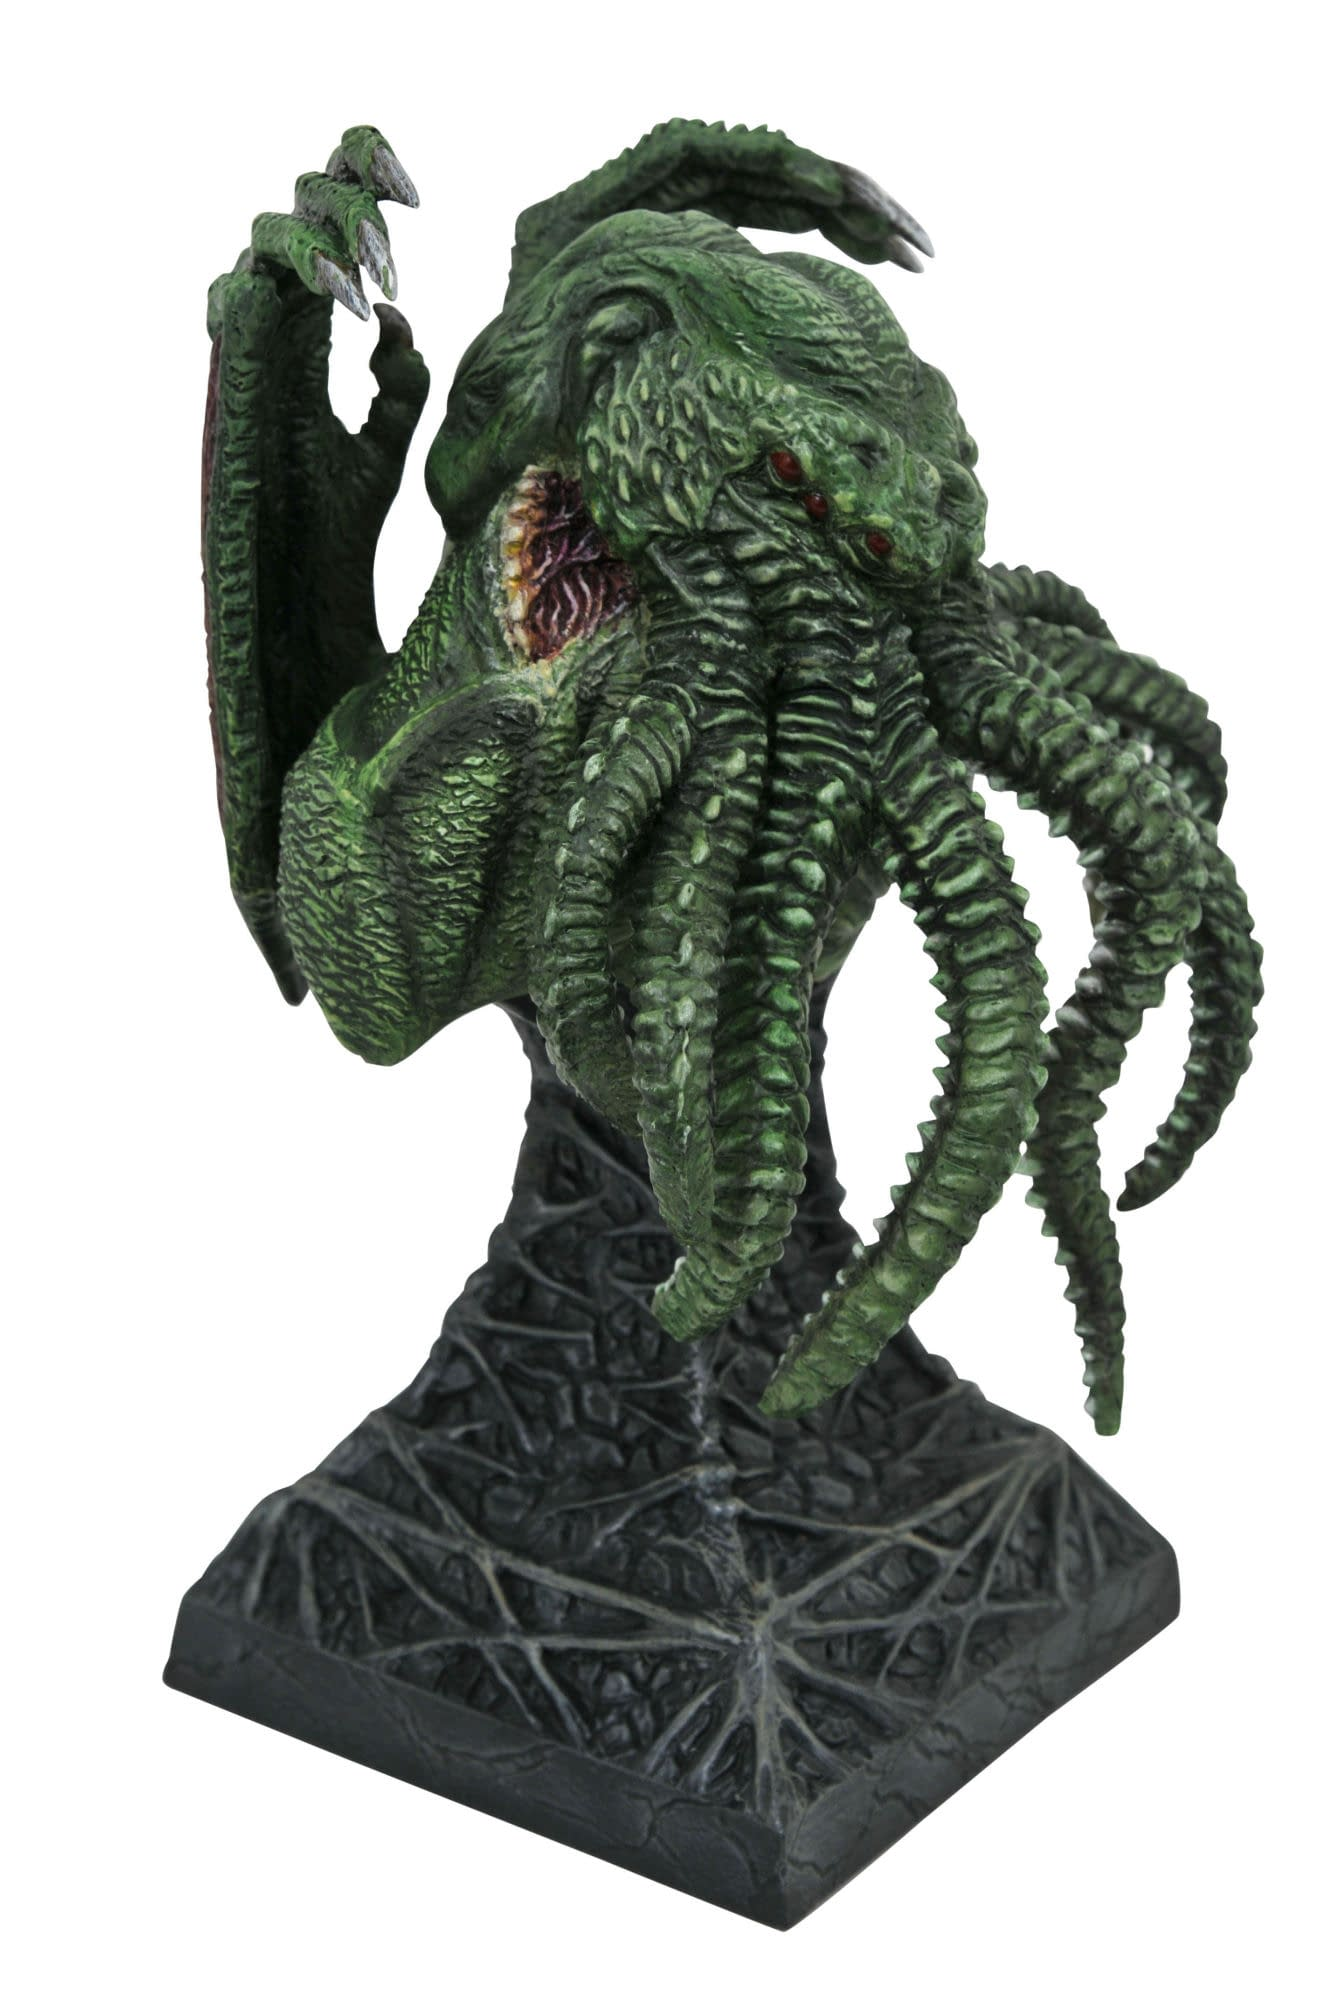 Cthulhu and Pennywise Come From the Depths with Diamond Gallery